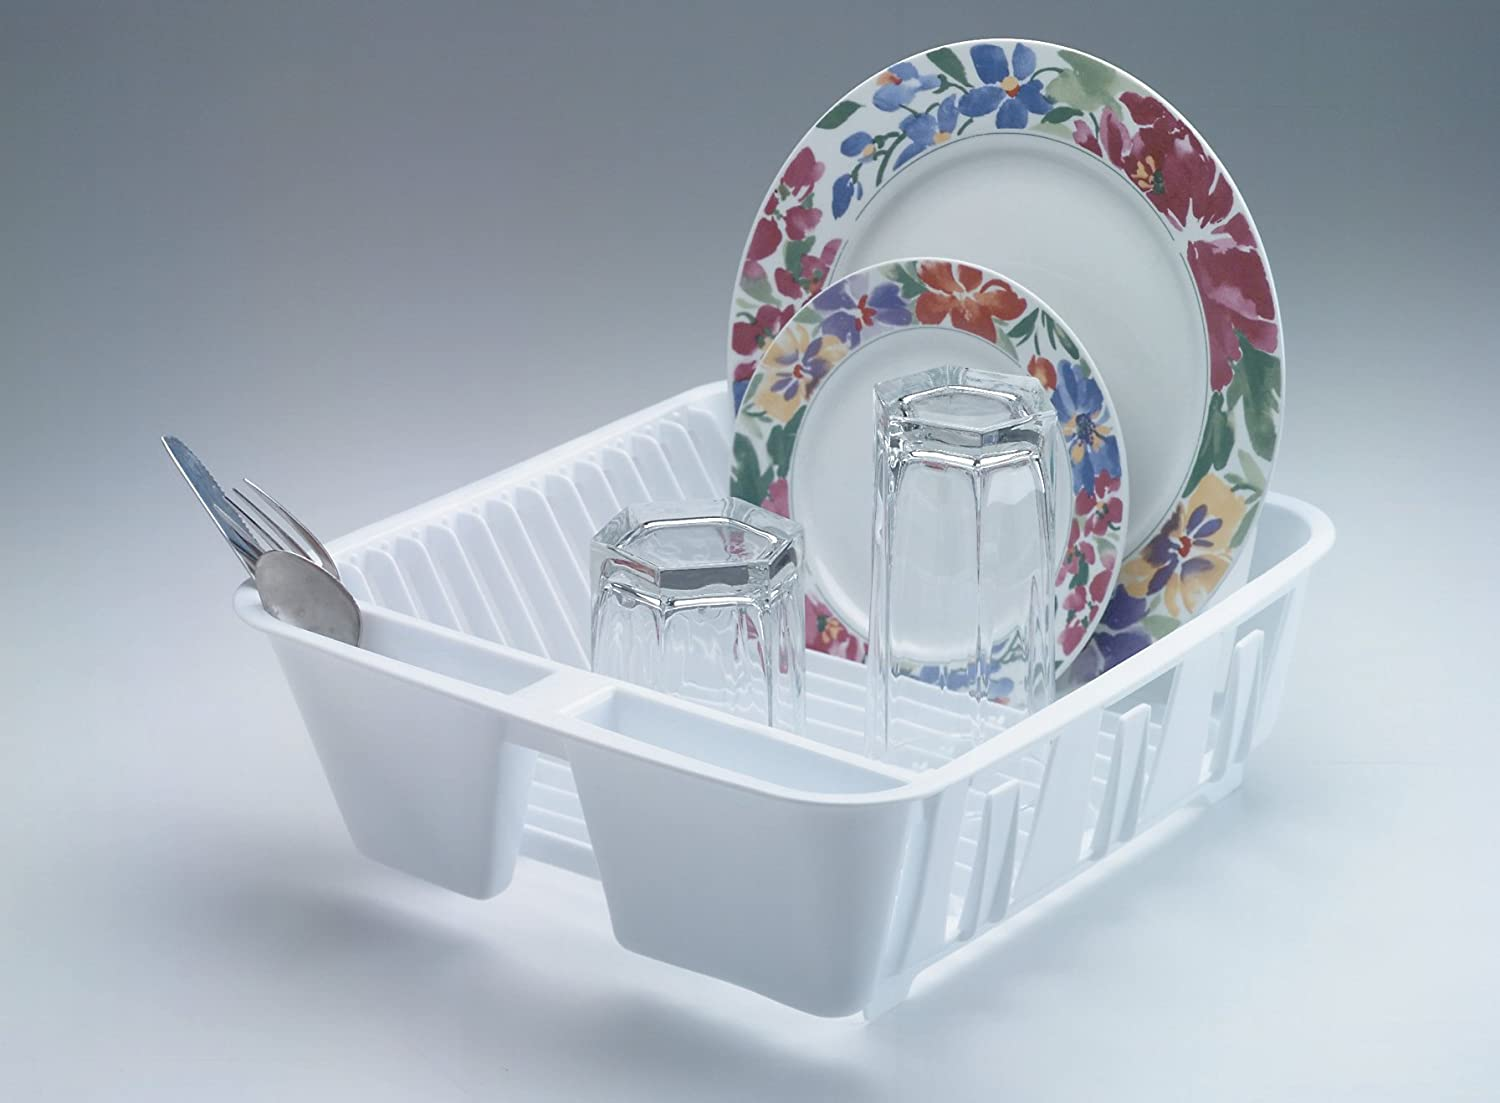 Amazon: Rubbermaid Antimicrobial Insink Dish Drainer, White, Small  (fg6049arwht): Kitchen & Dining